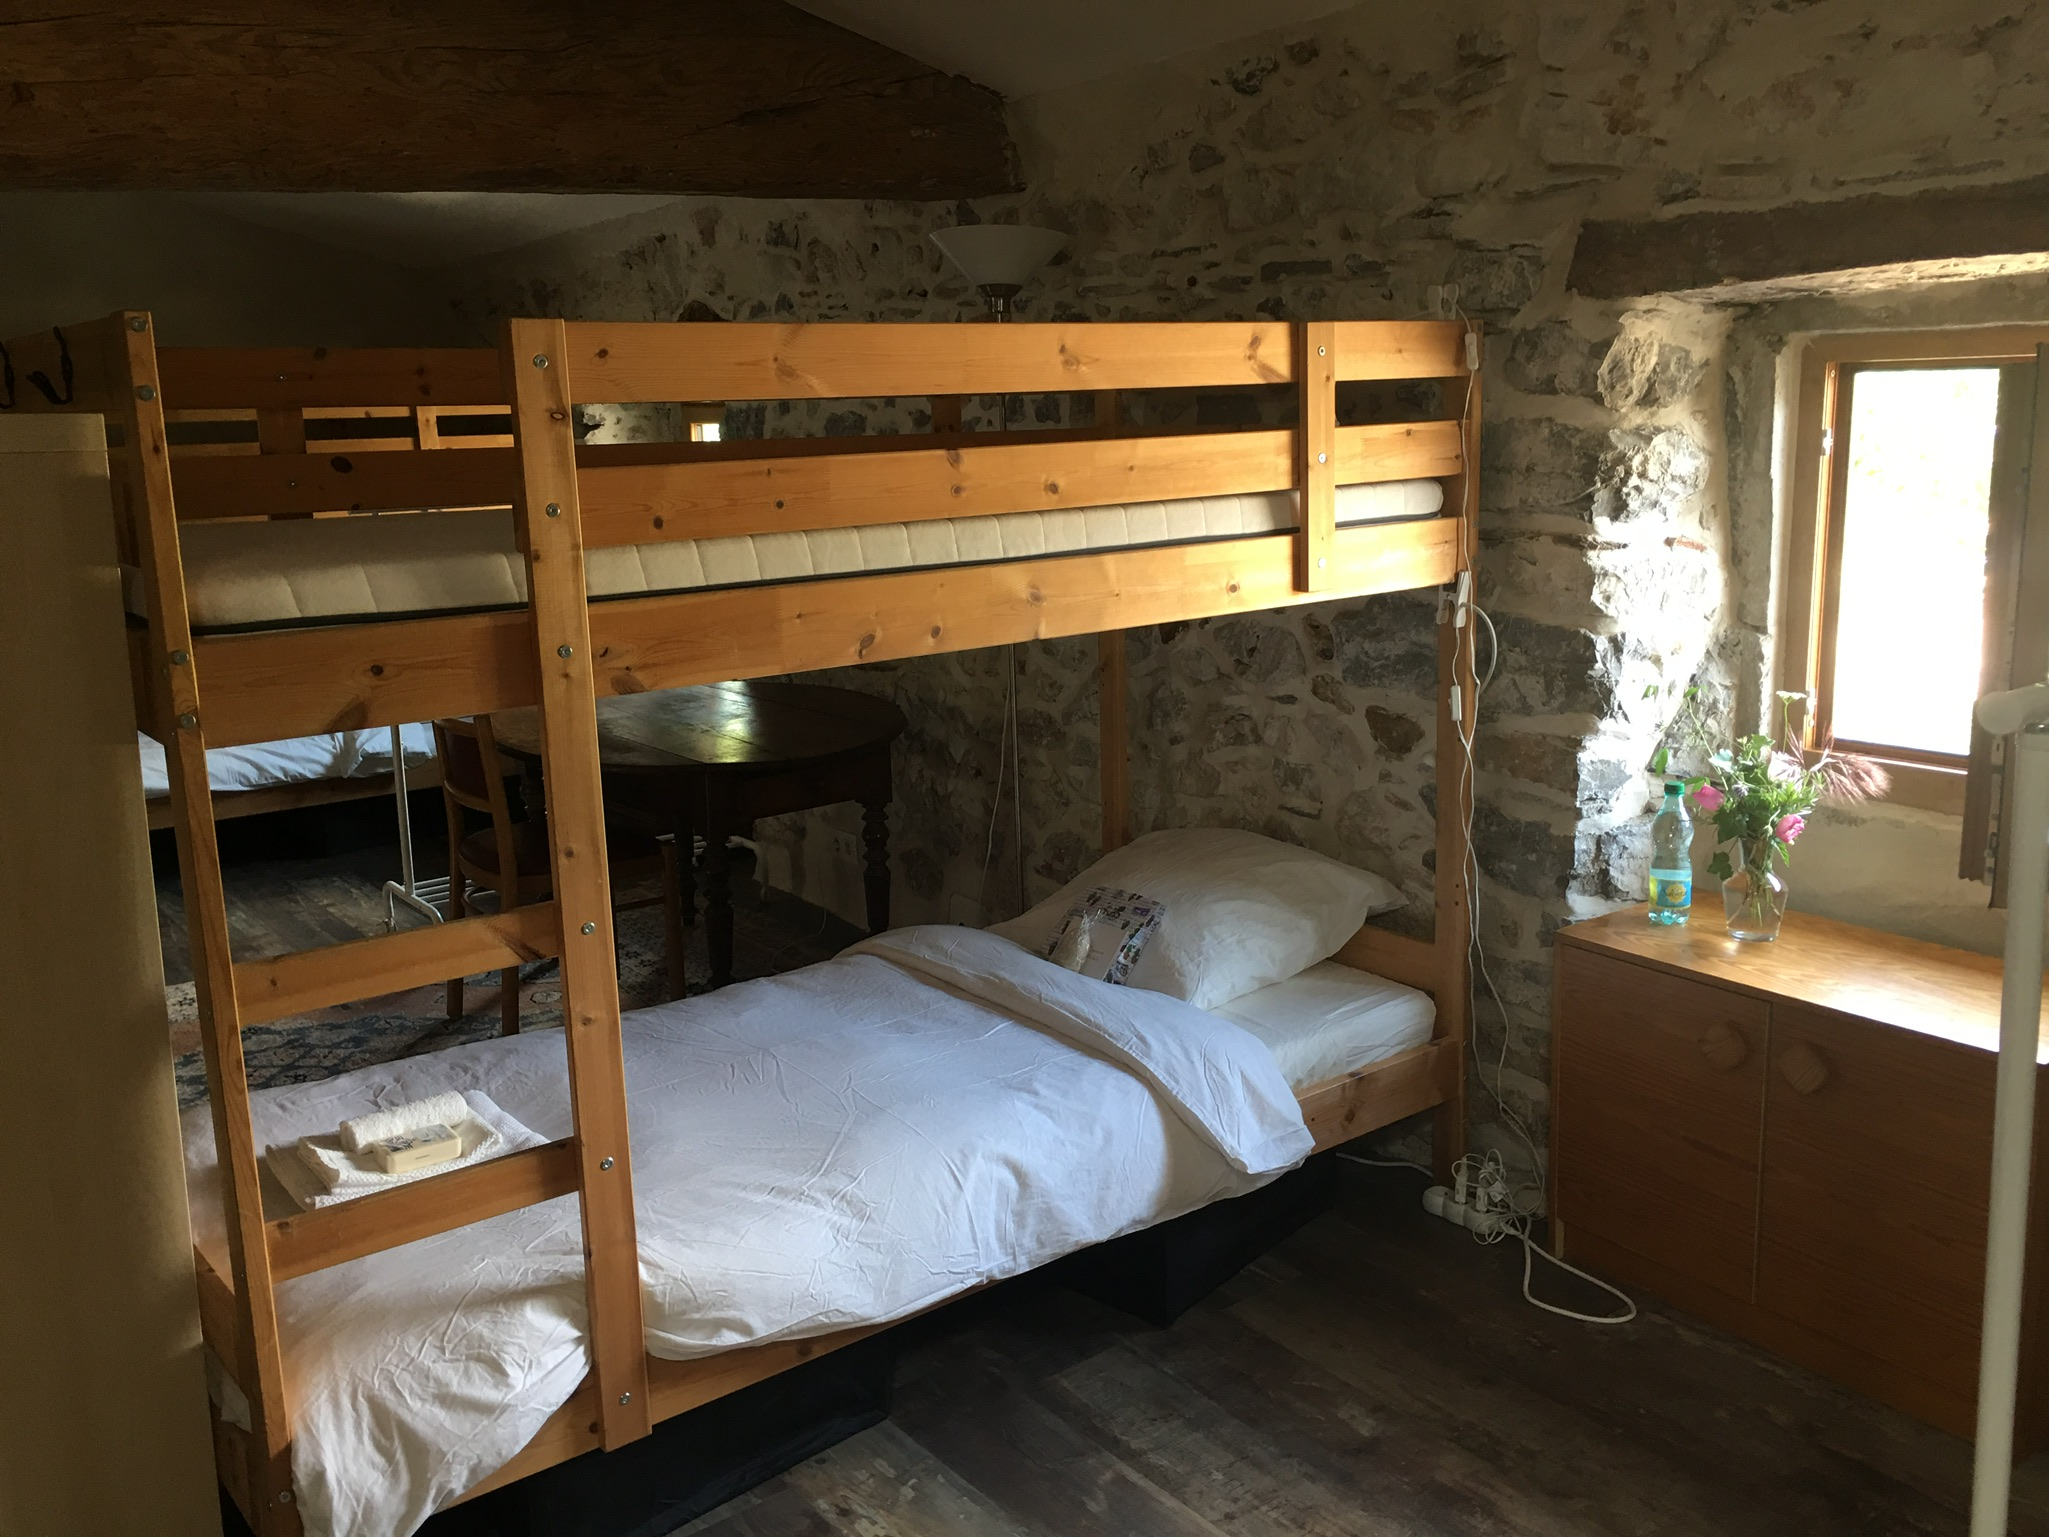 Accommodation in the Chateau